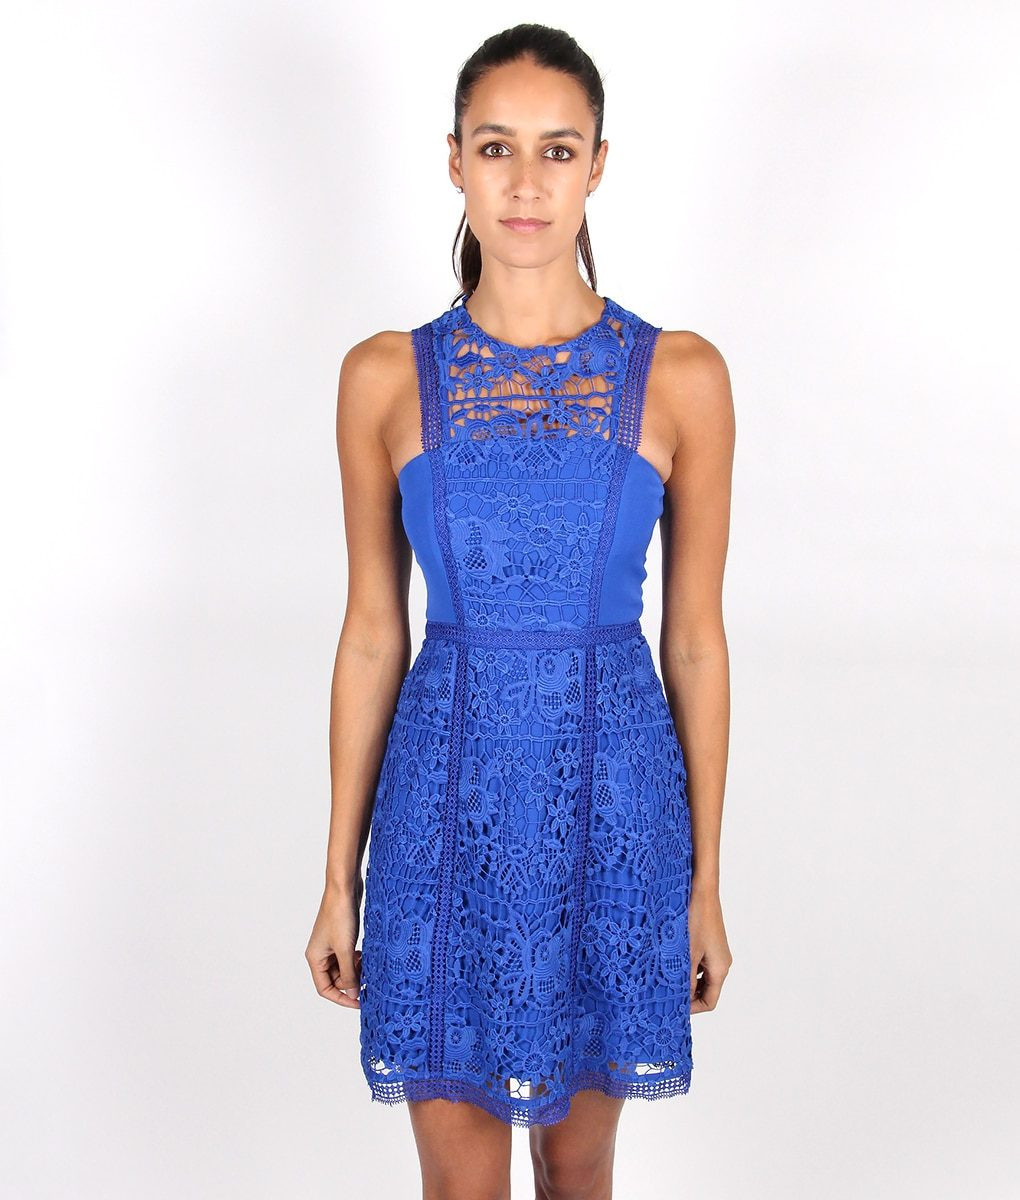 Alila-Sapphire-Blue-Lace-Dress-for-wedding-by-Lumier-by-Bariano